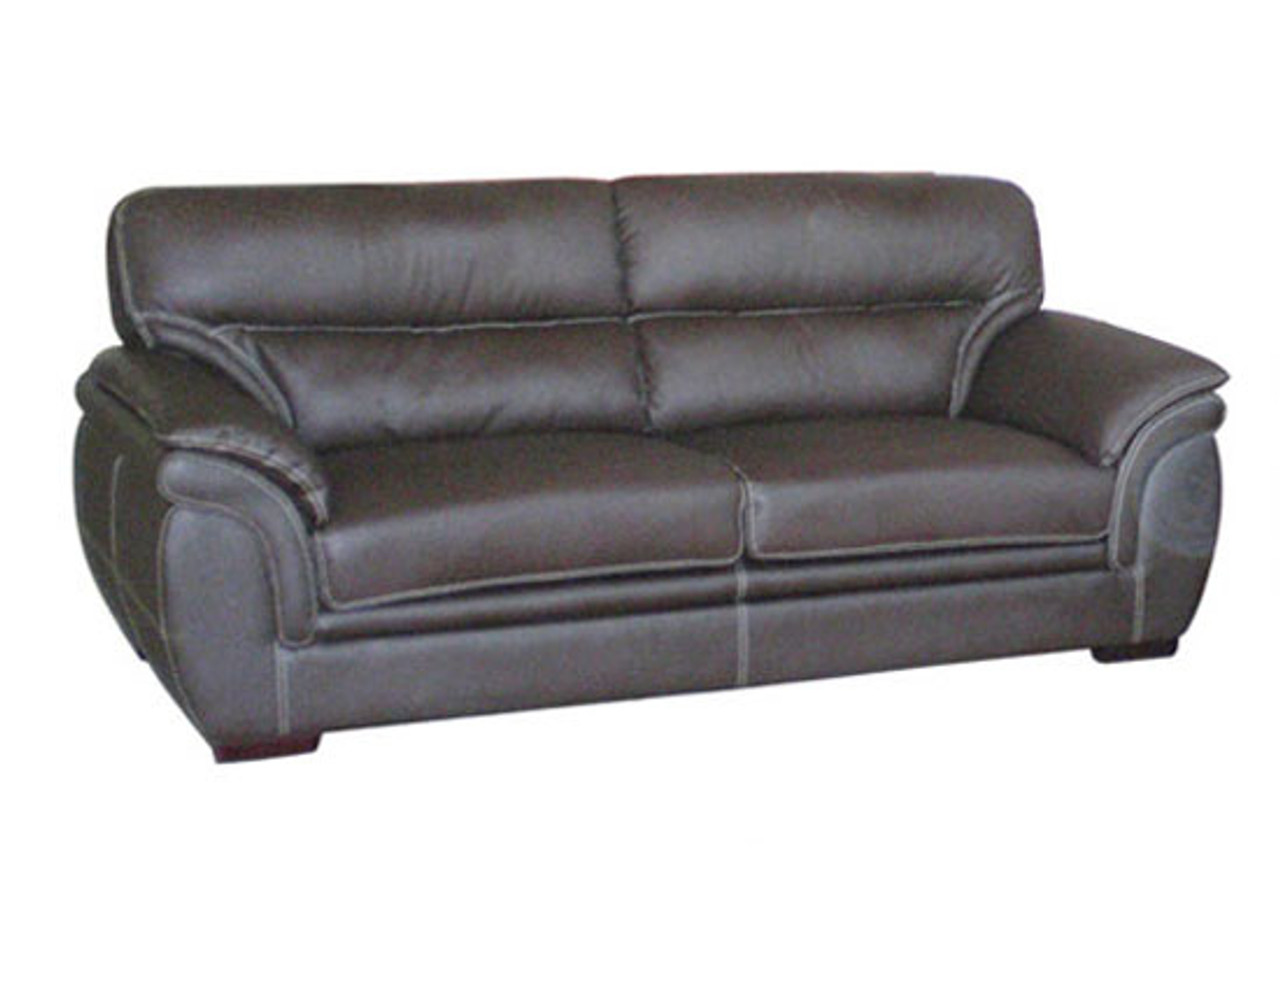 MATILDA 3 SEATER BONDED LEATHER SOFA LOUNGE - BLACK , RED , GREY OR ...